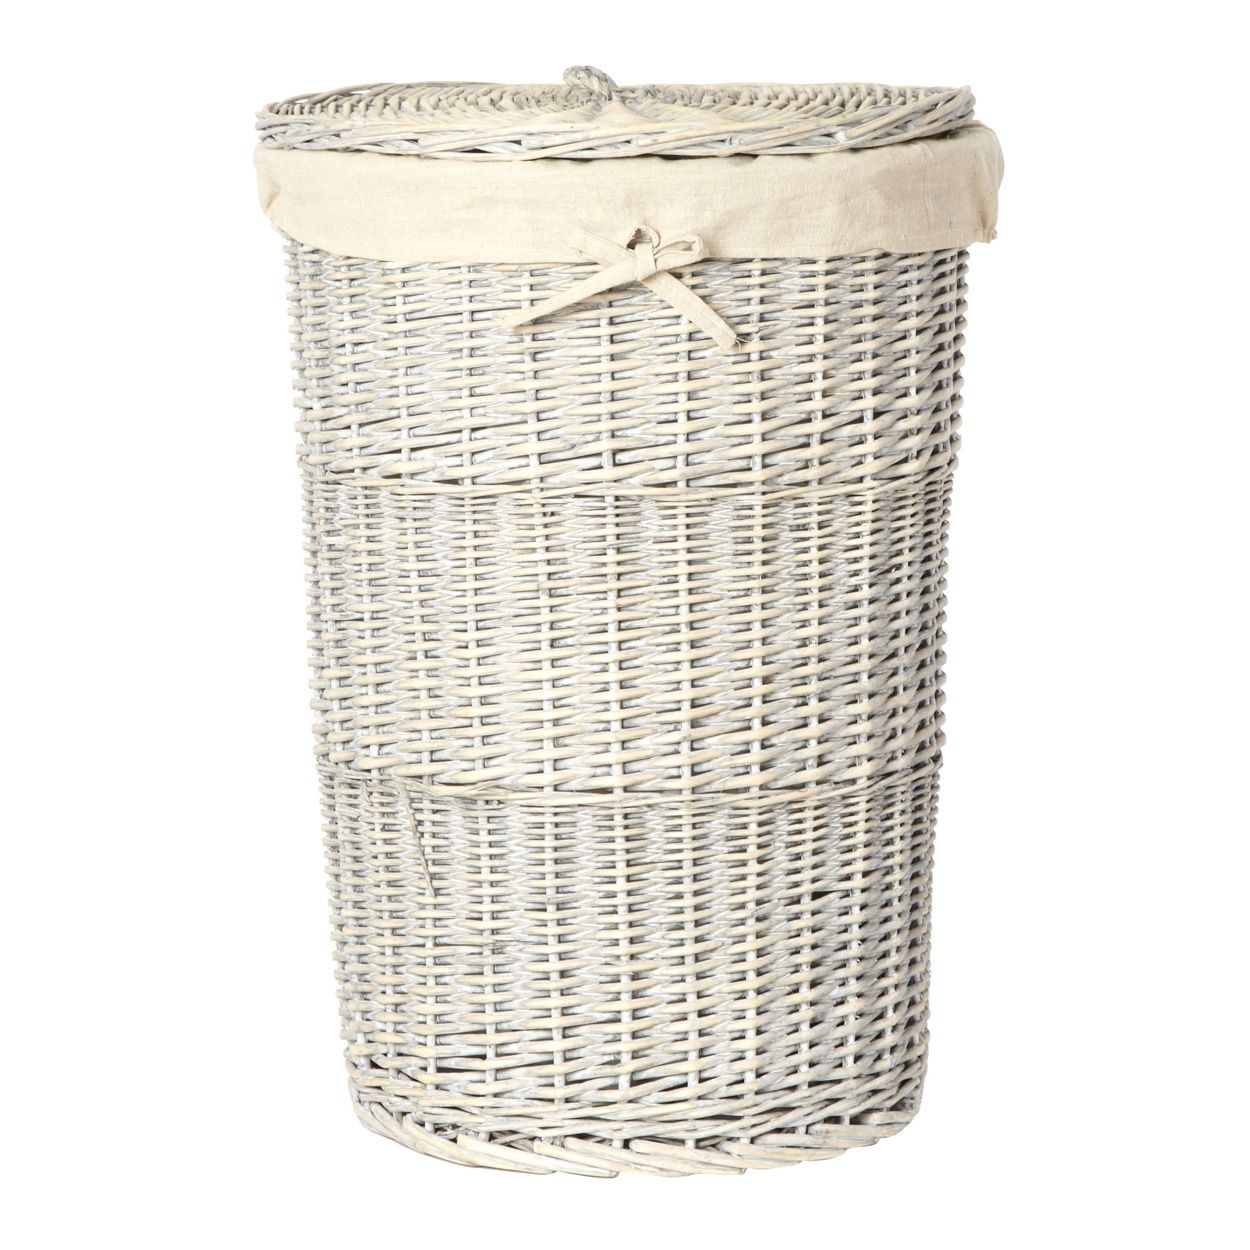 Grey Wicker Laundry Basket At Debenhams Com Wicker Laundry